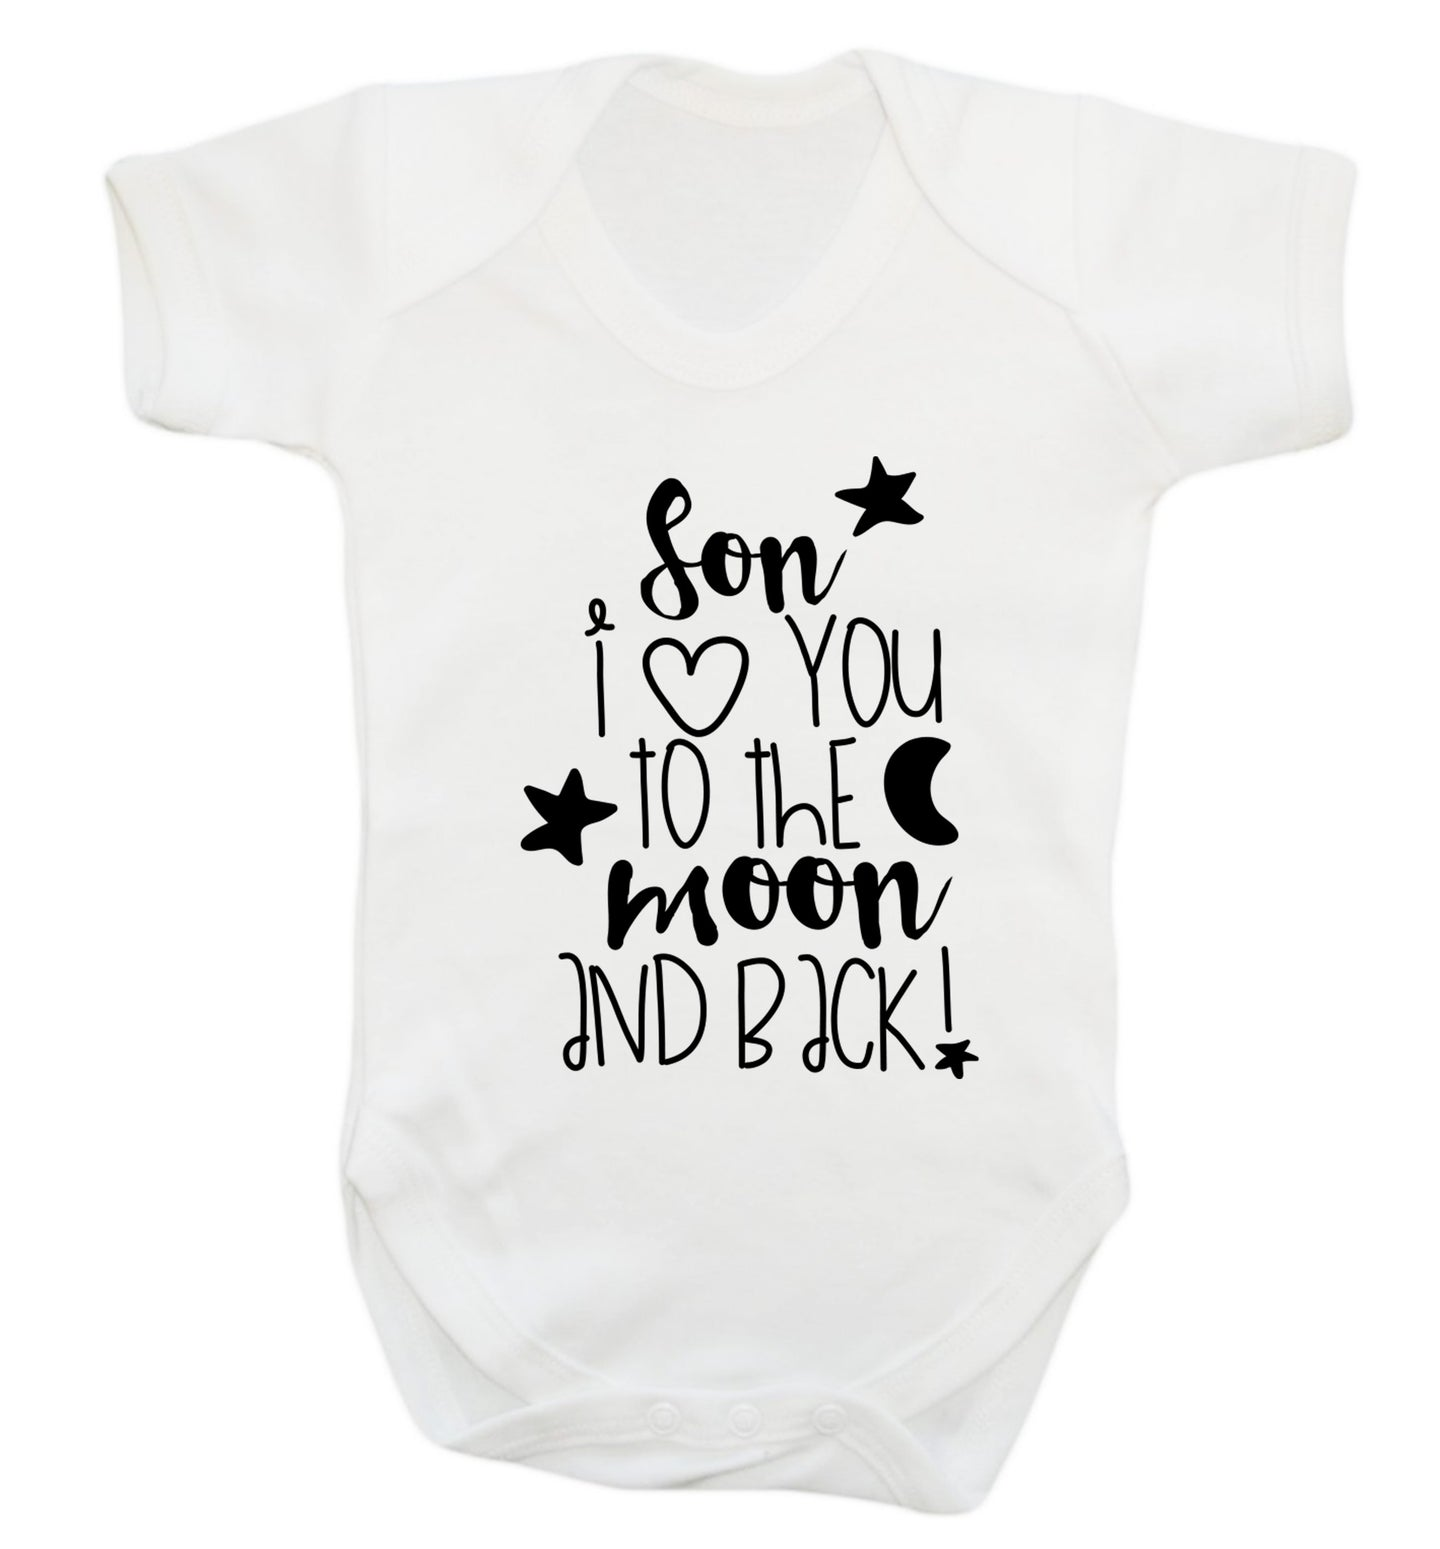 Son I love you to the moon and back Baby Vest white 18-24 months